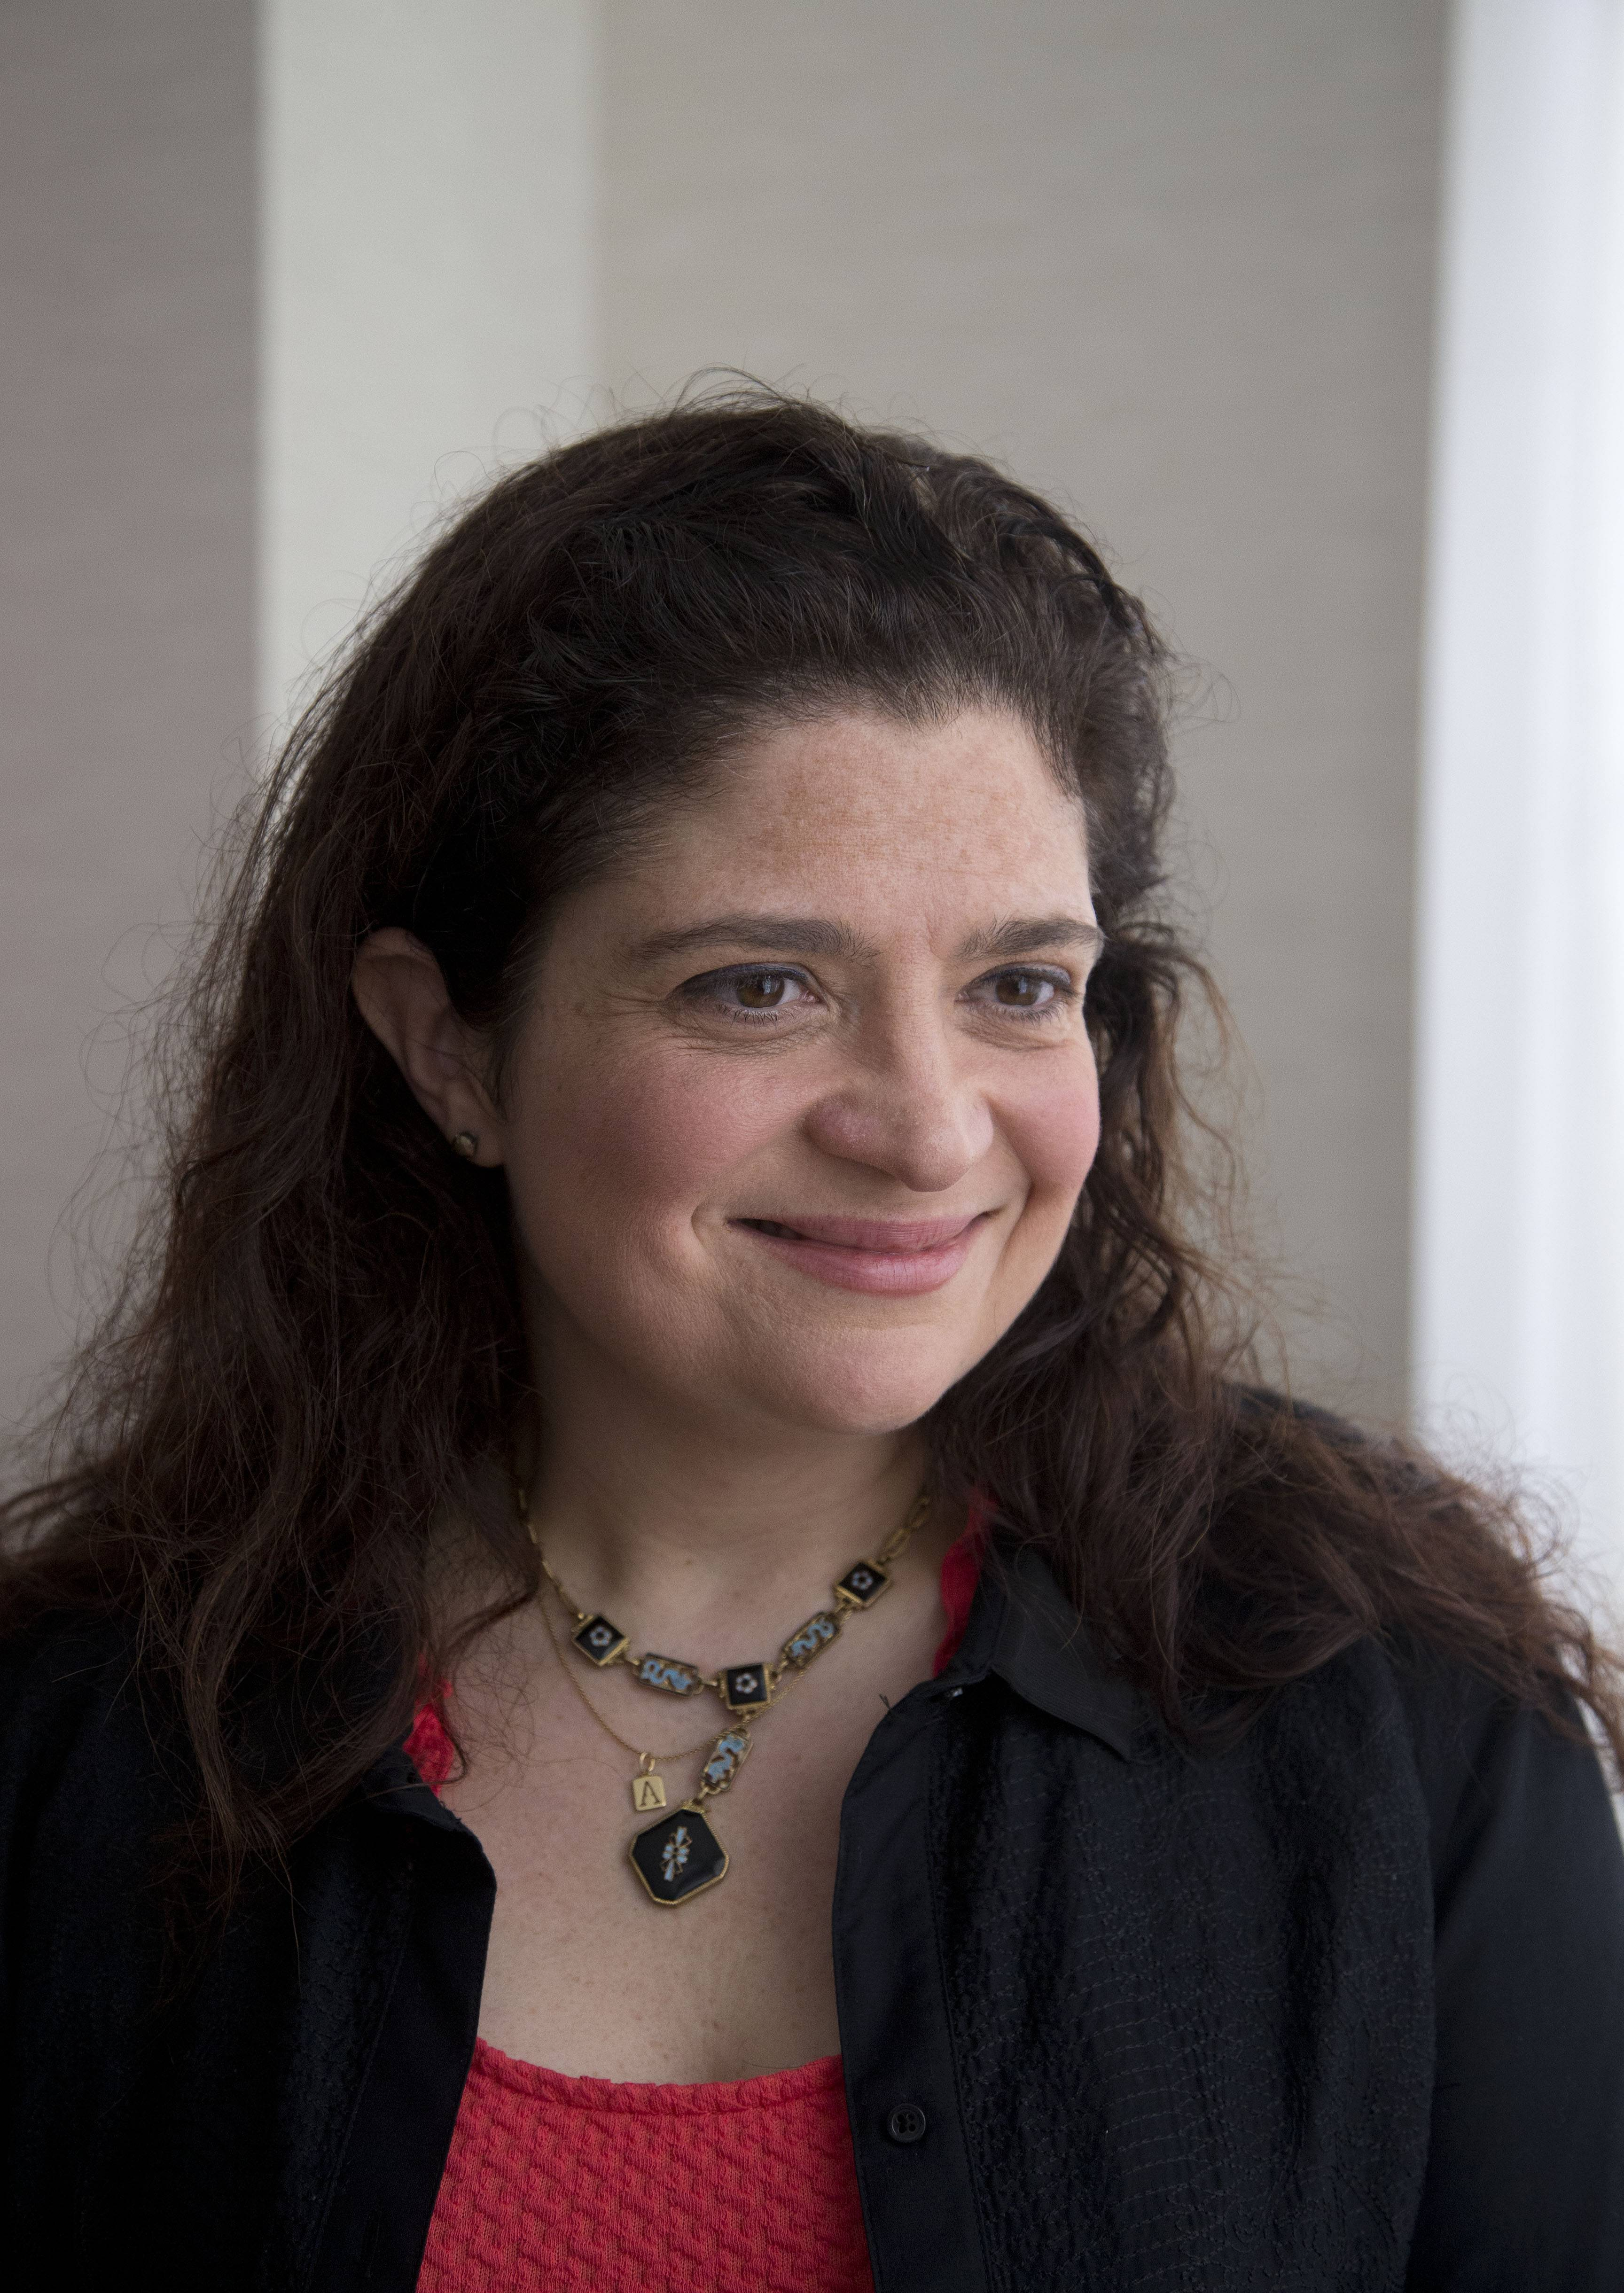 Food Network chef Alex Guarnaschelli says home cooks have started looking for new sources to heighten flavors. To help them out, she recently shared the five ingredients she thinks Americans should use more often.